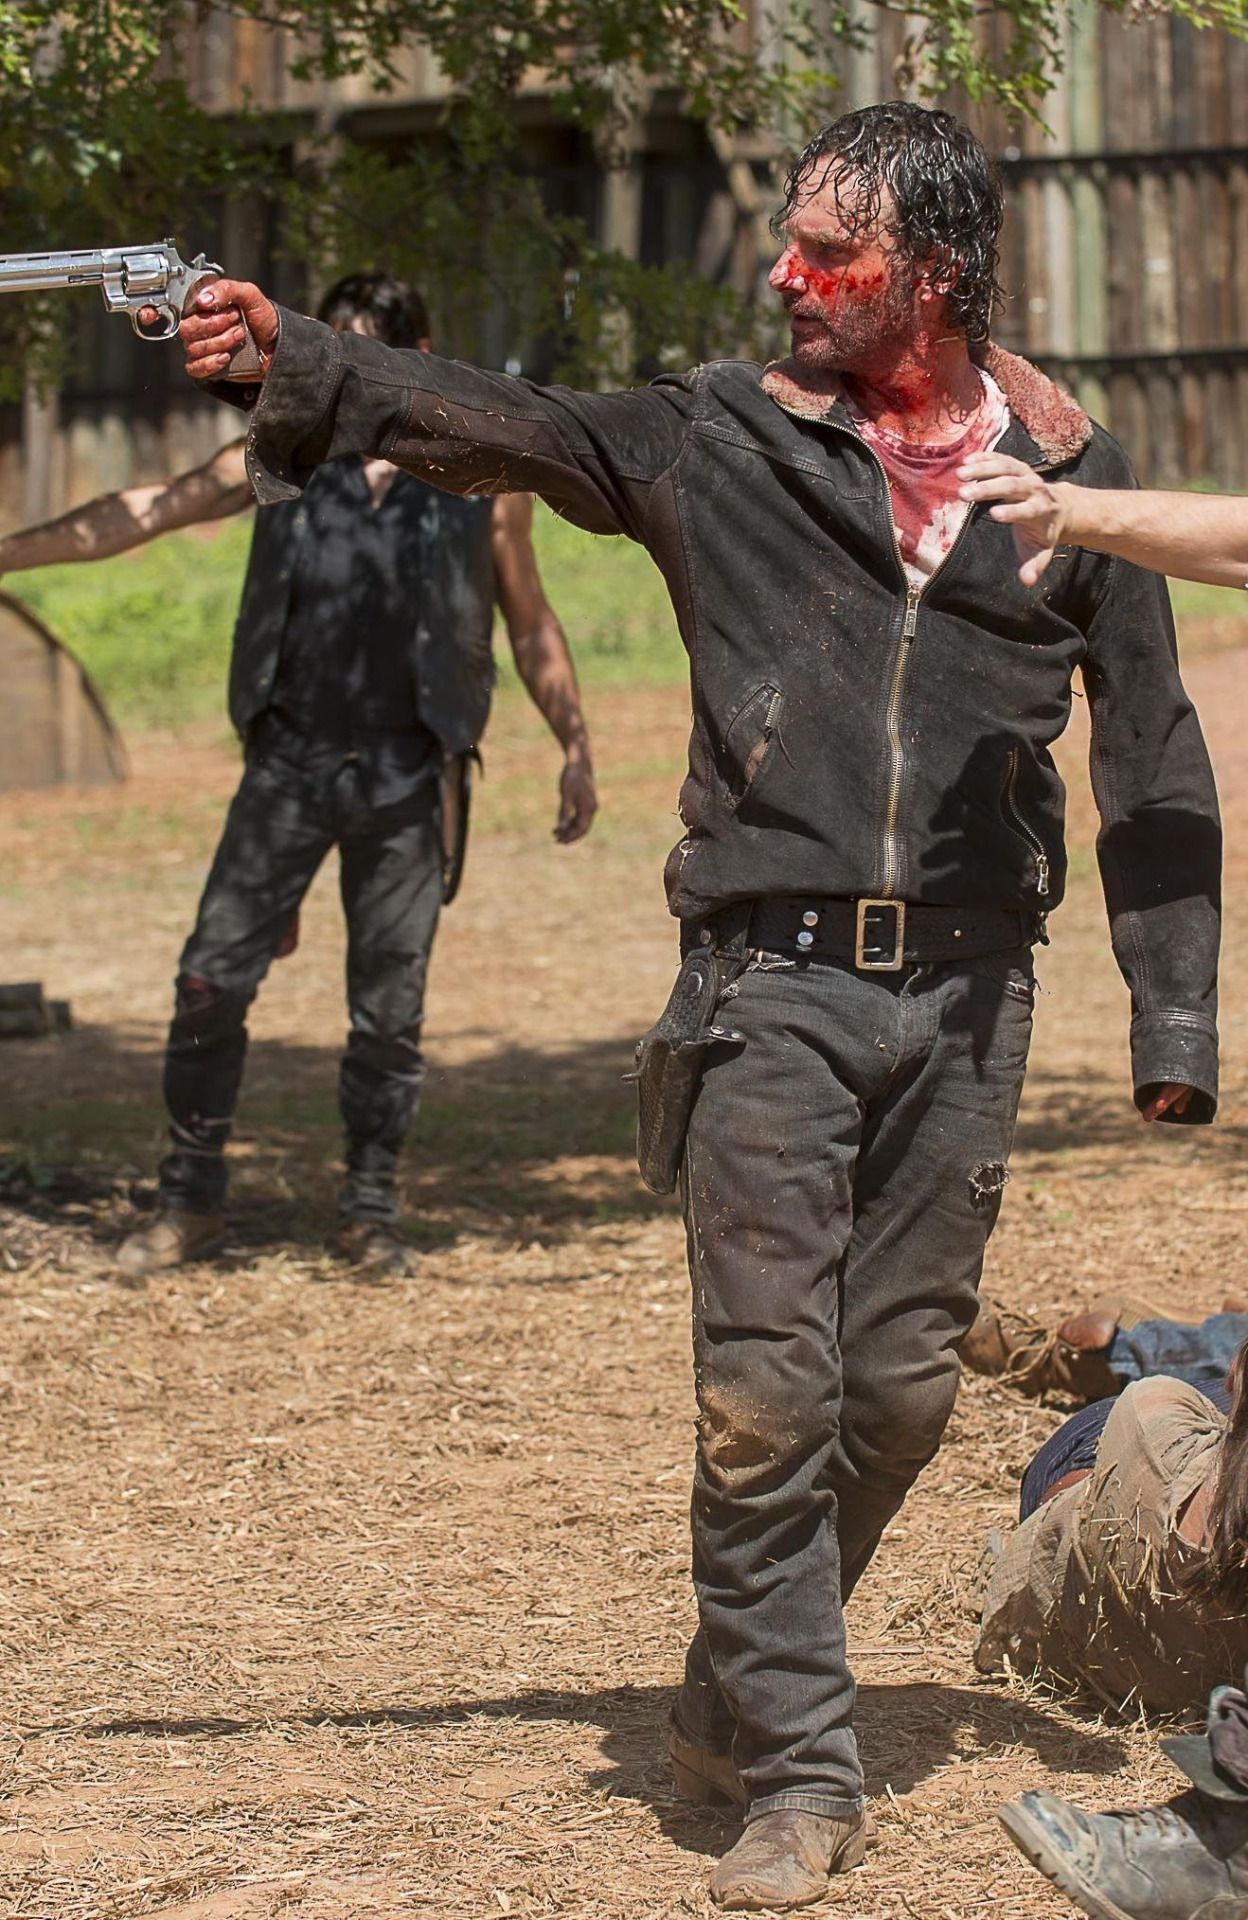 Rick...he generally likes to bathe in the blood of his enemies...he's got issues what can I say...